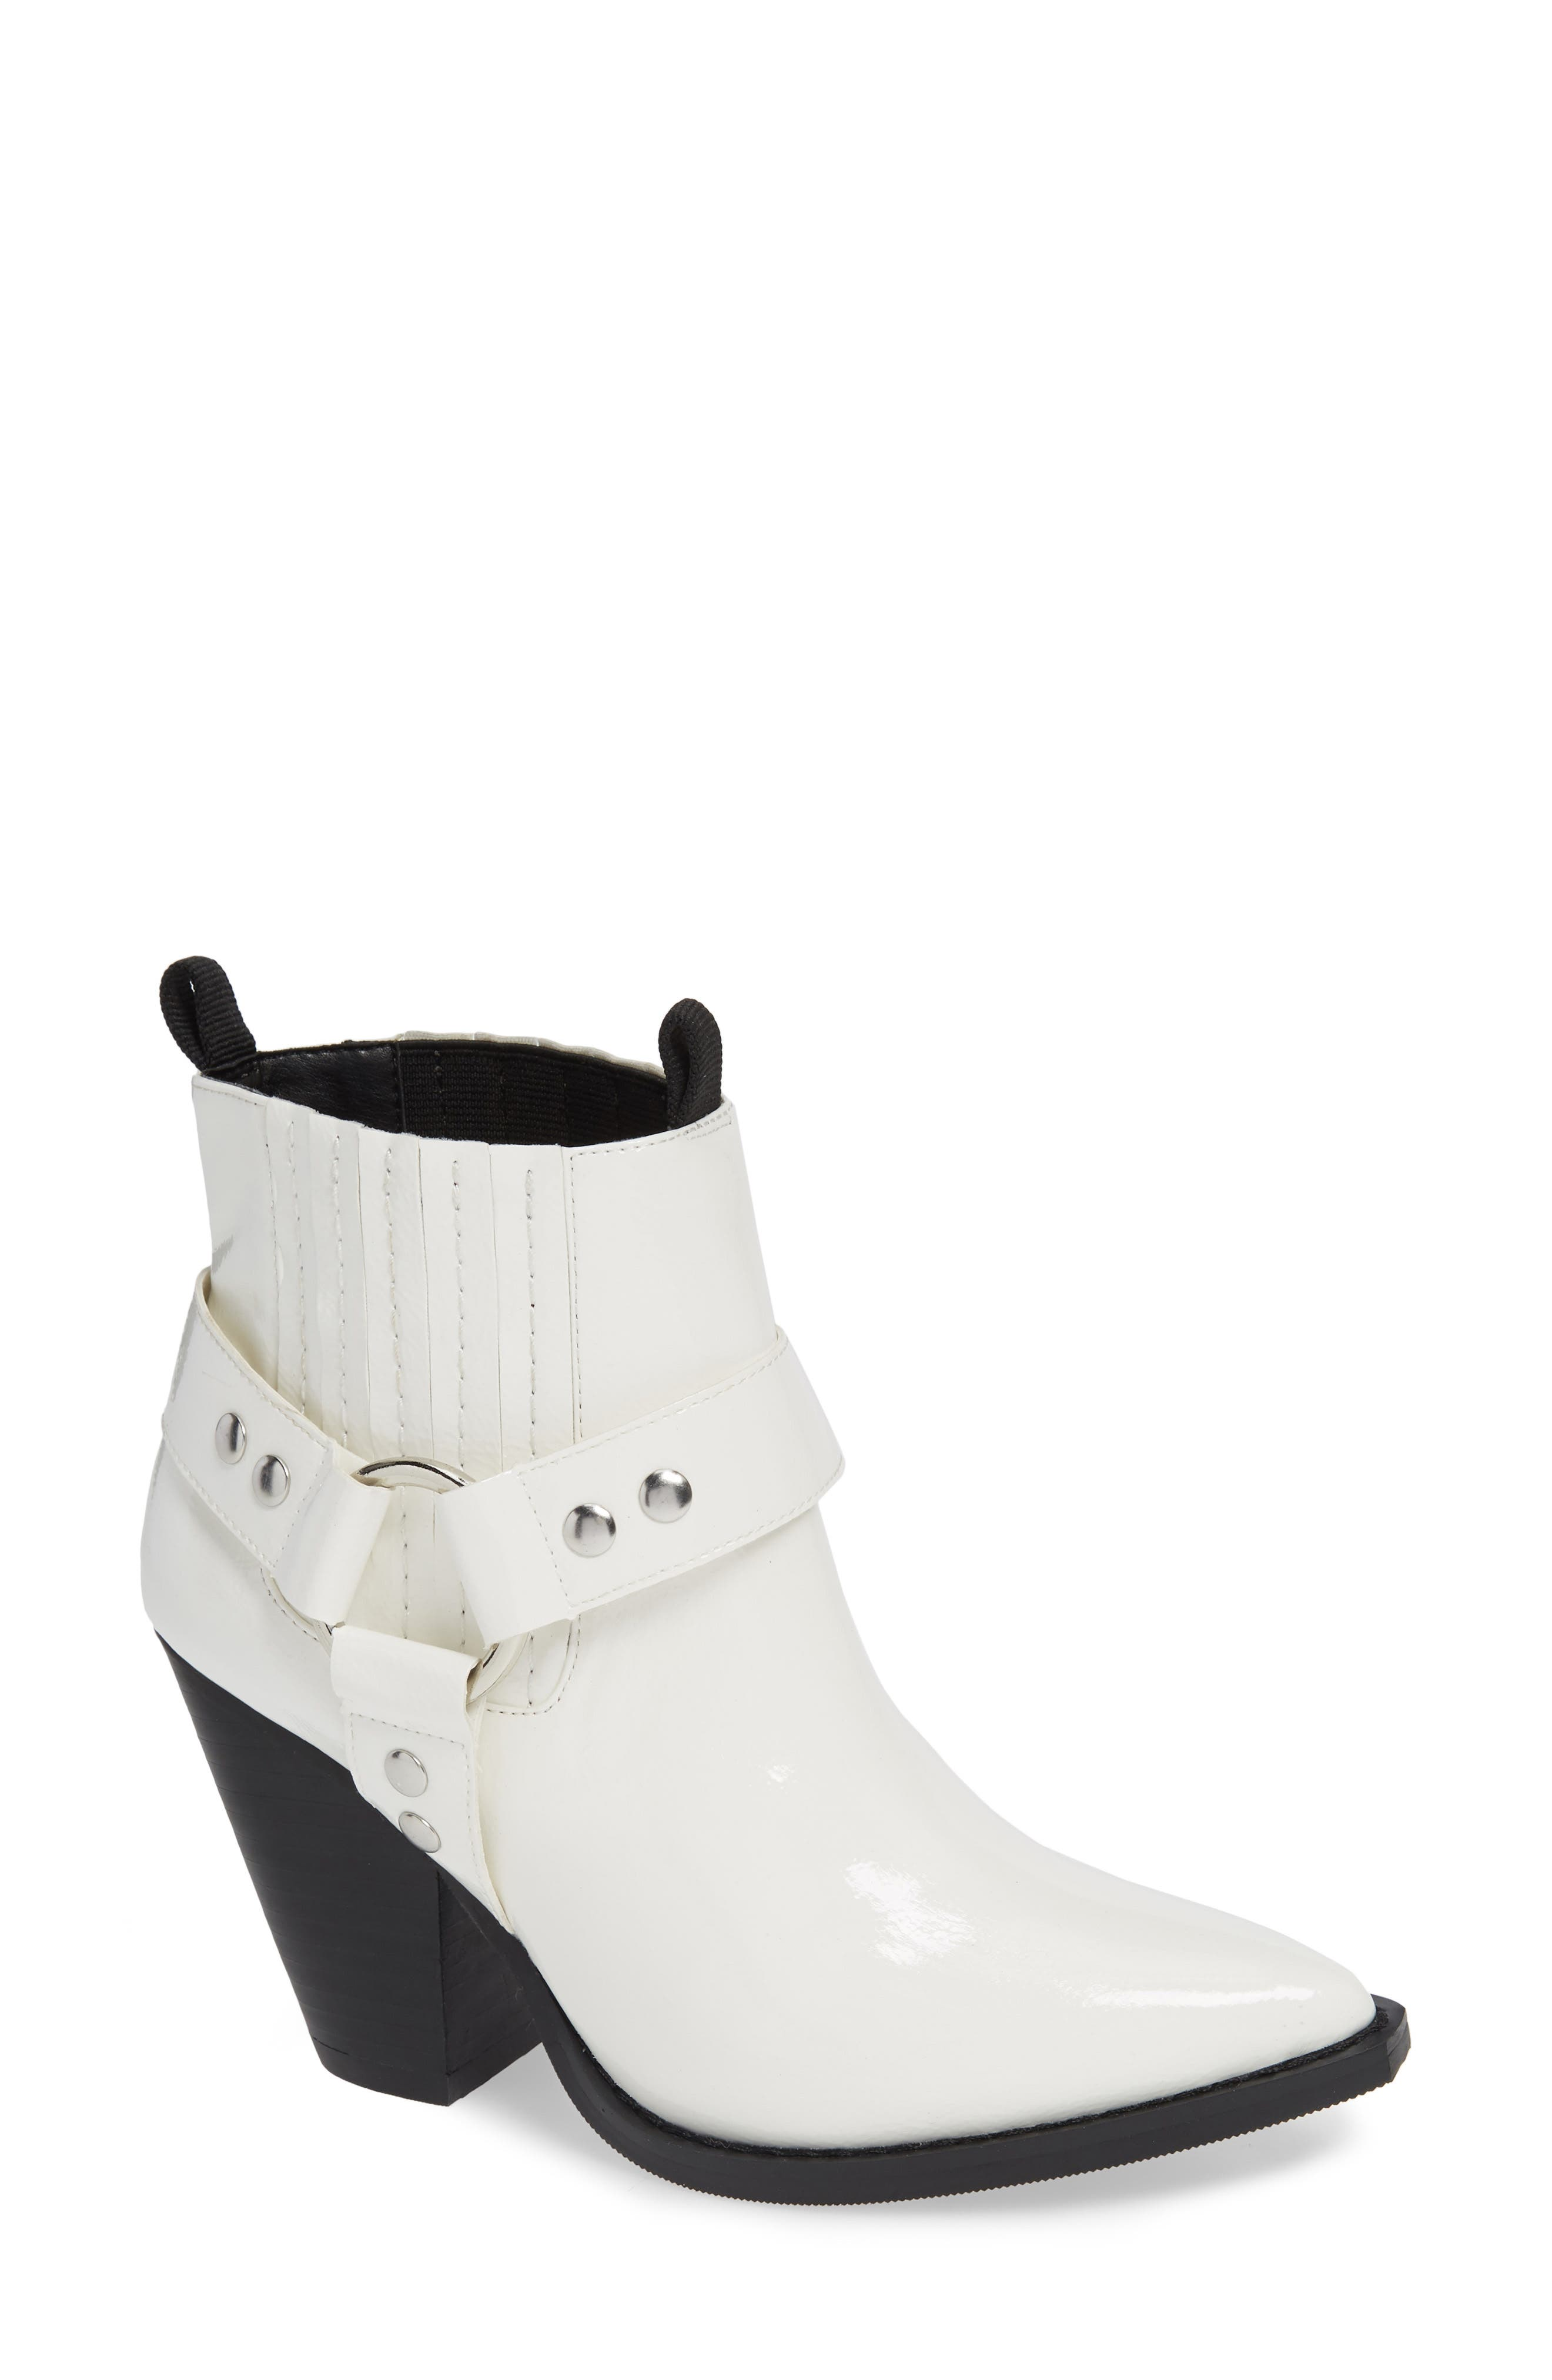 Lincoln Bootie,                             Main thumbnail 1, color,                             WHITE